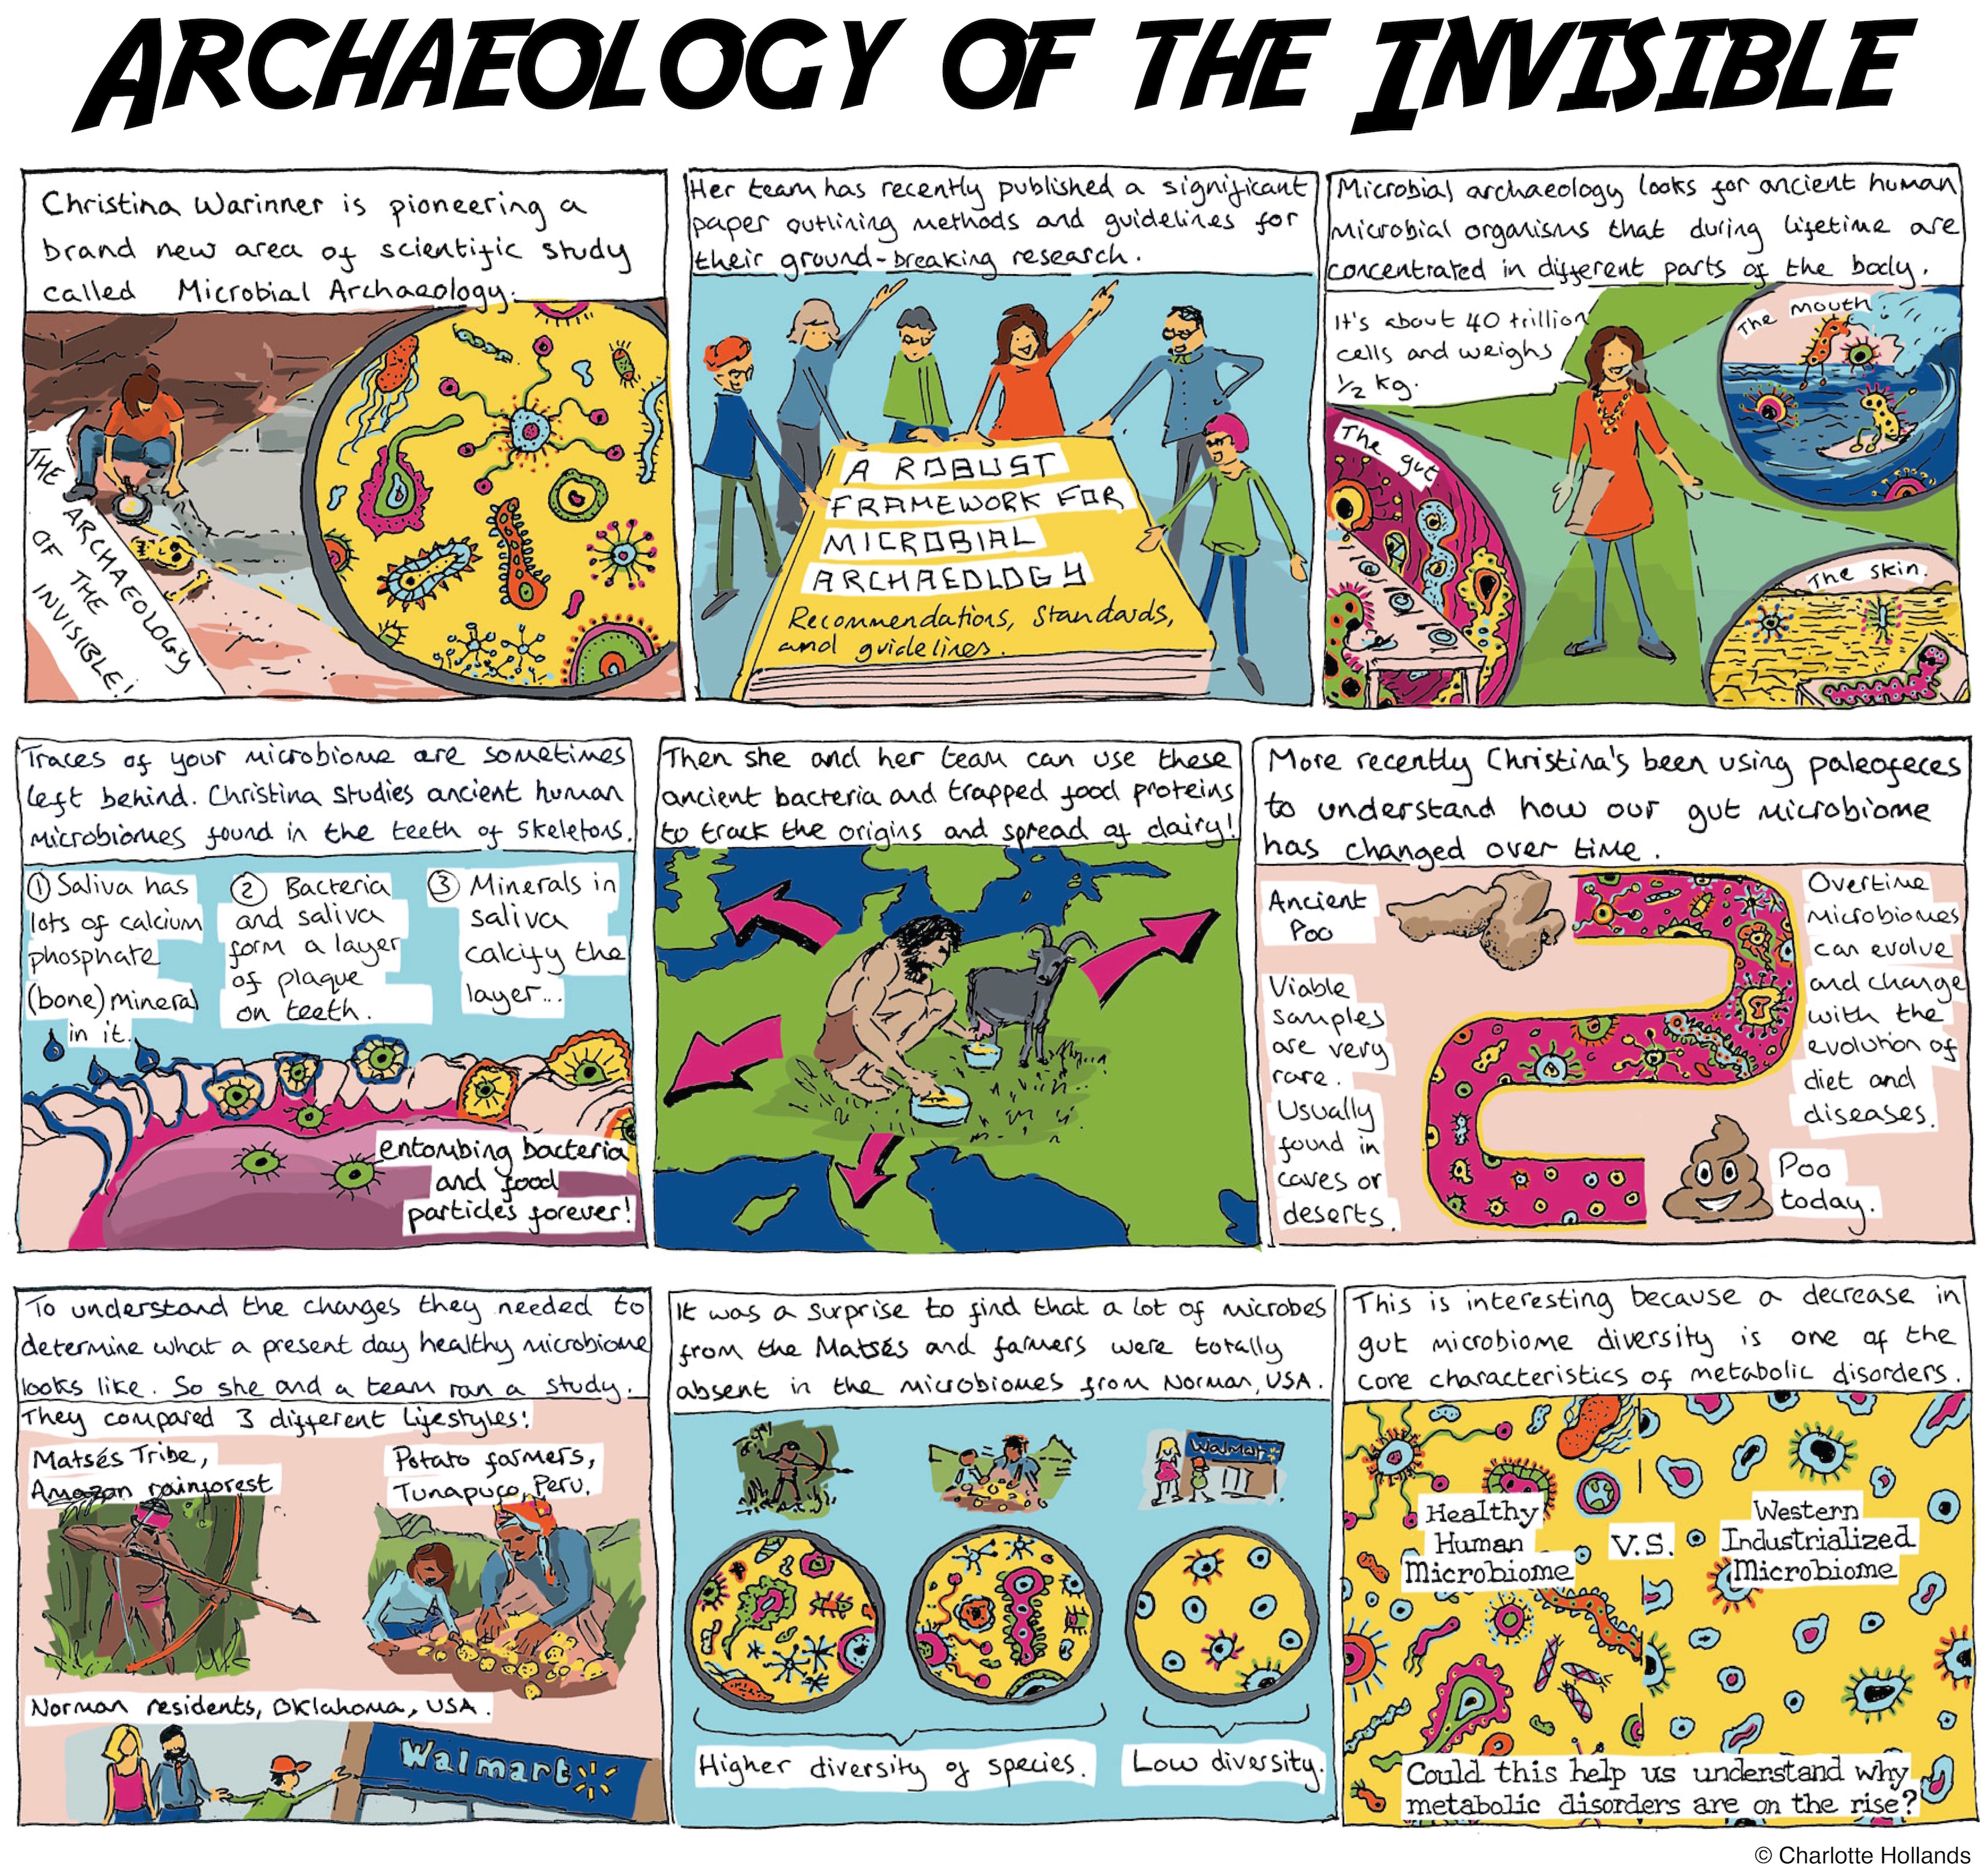 Anthropology News Magazine Archaeology Of The Invisible